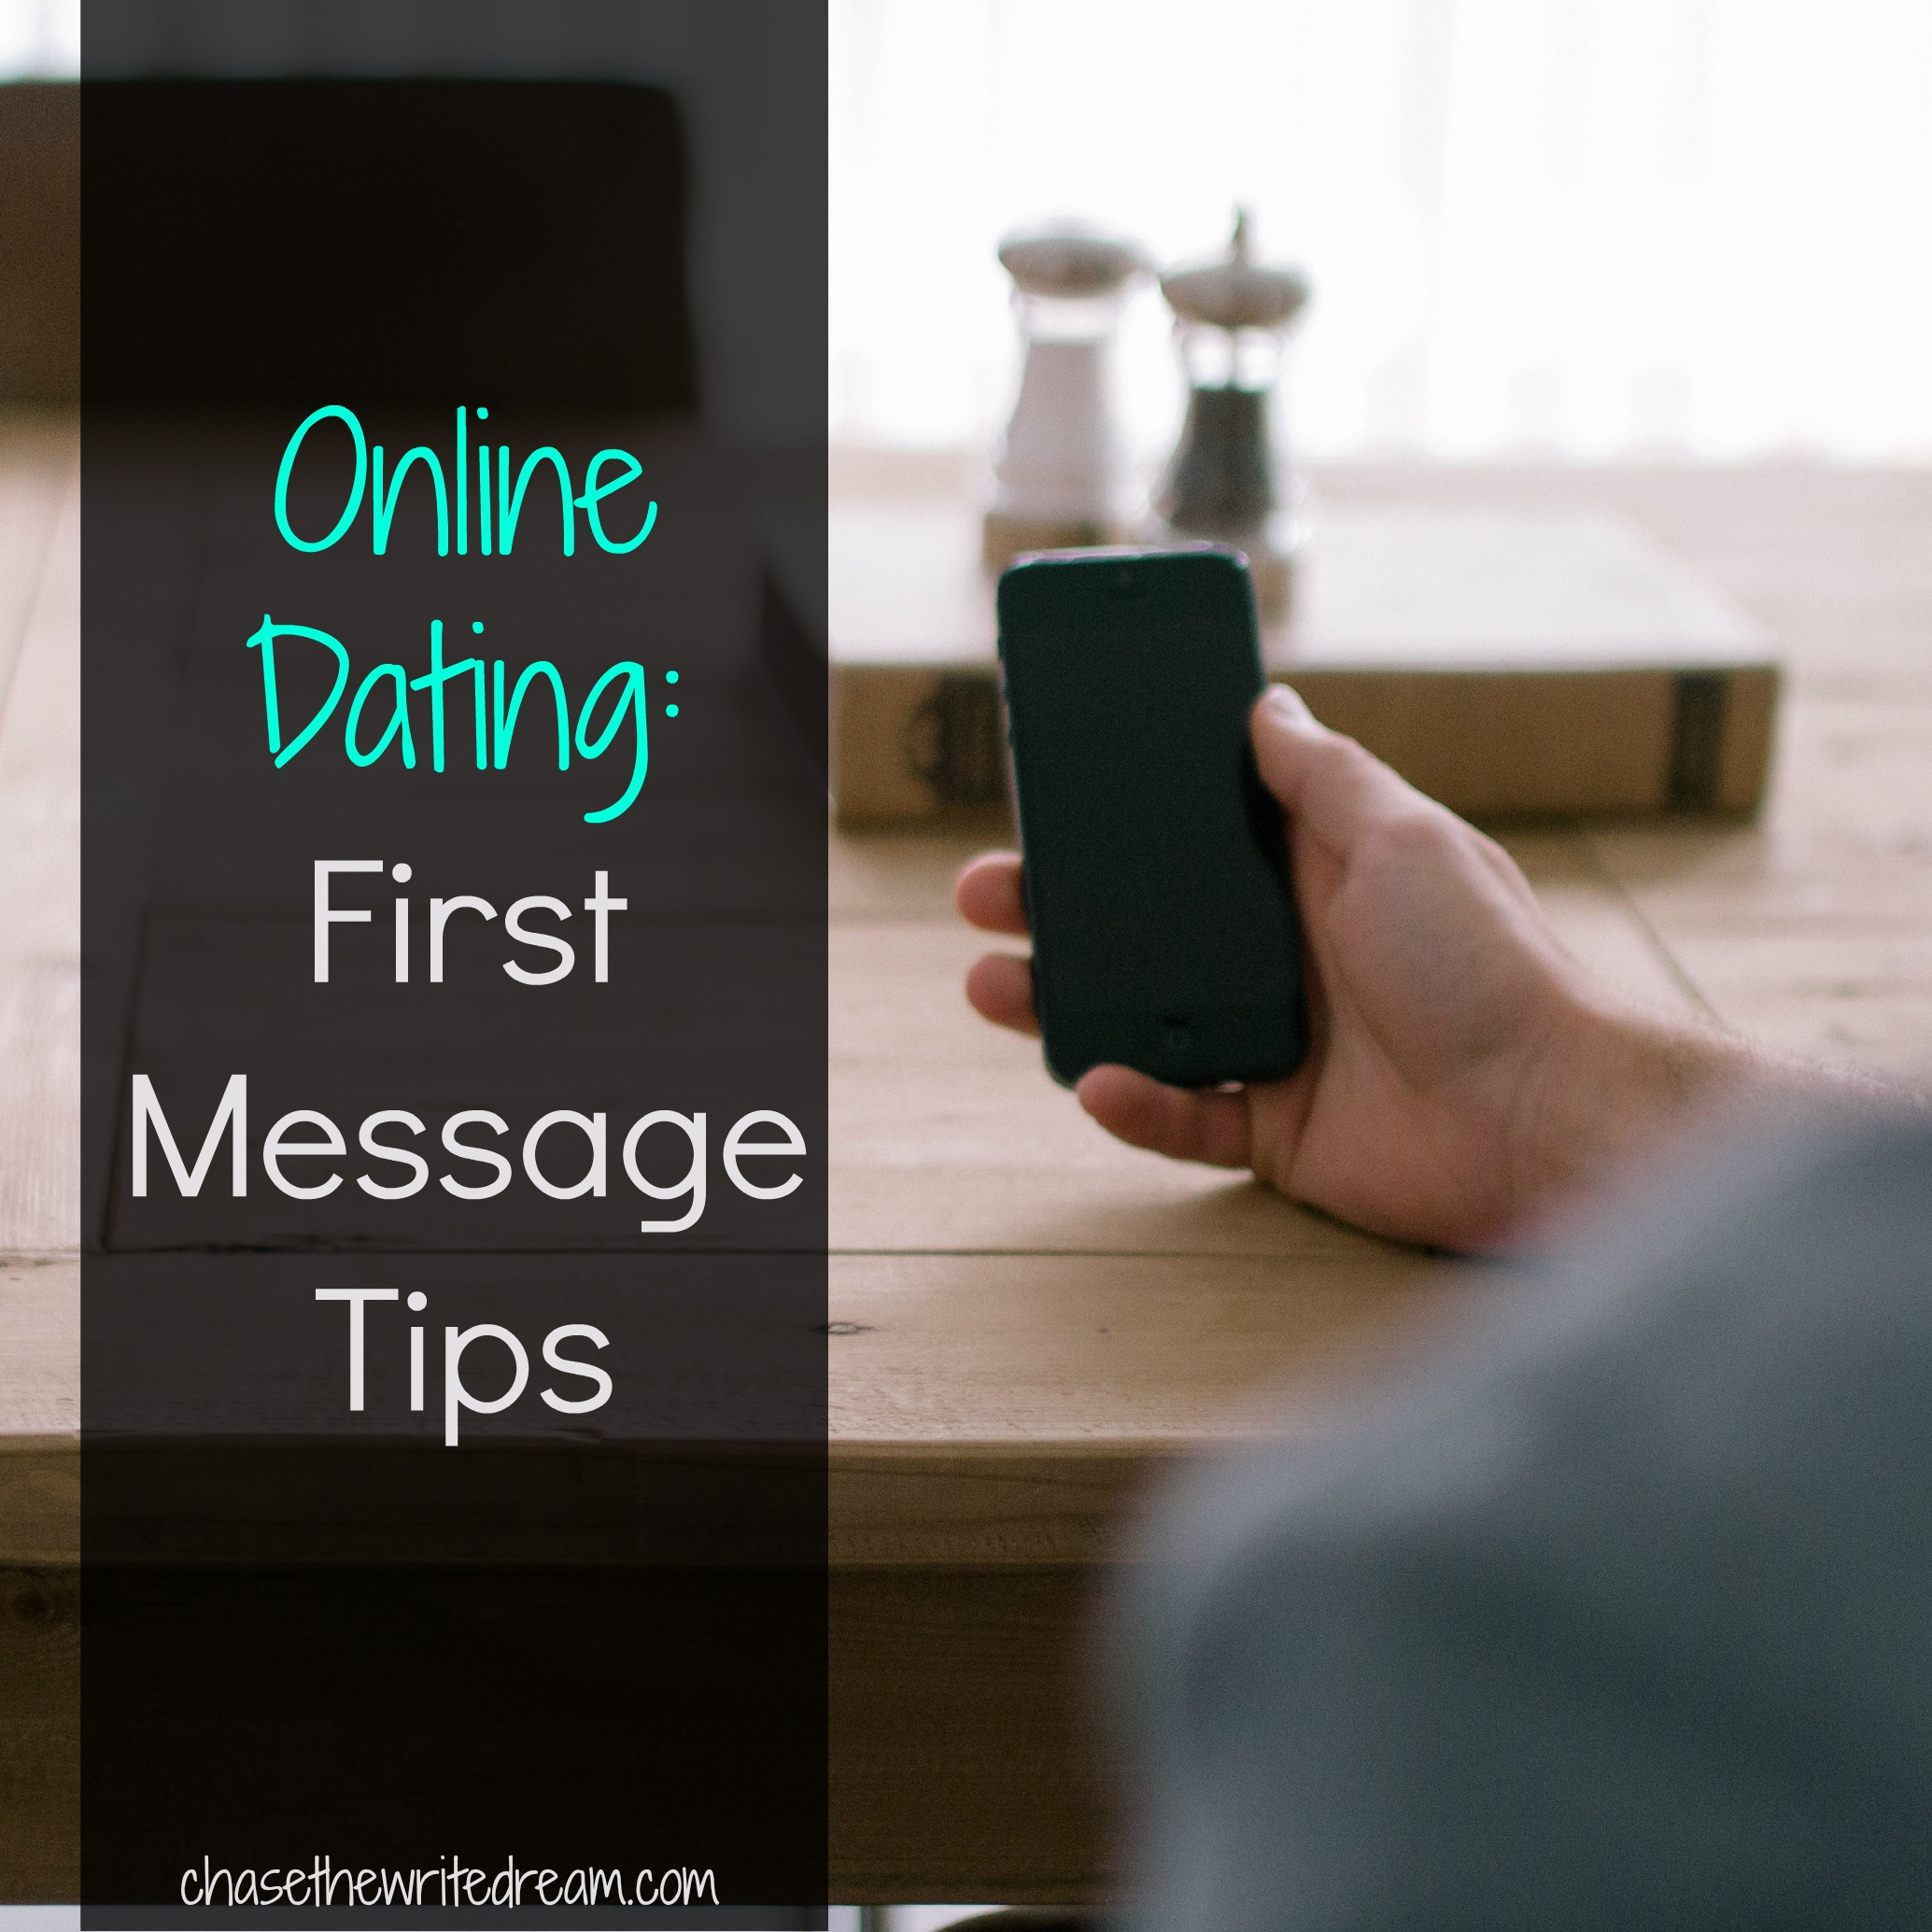 How To Write First Online Dating Message